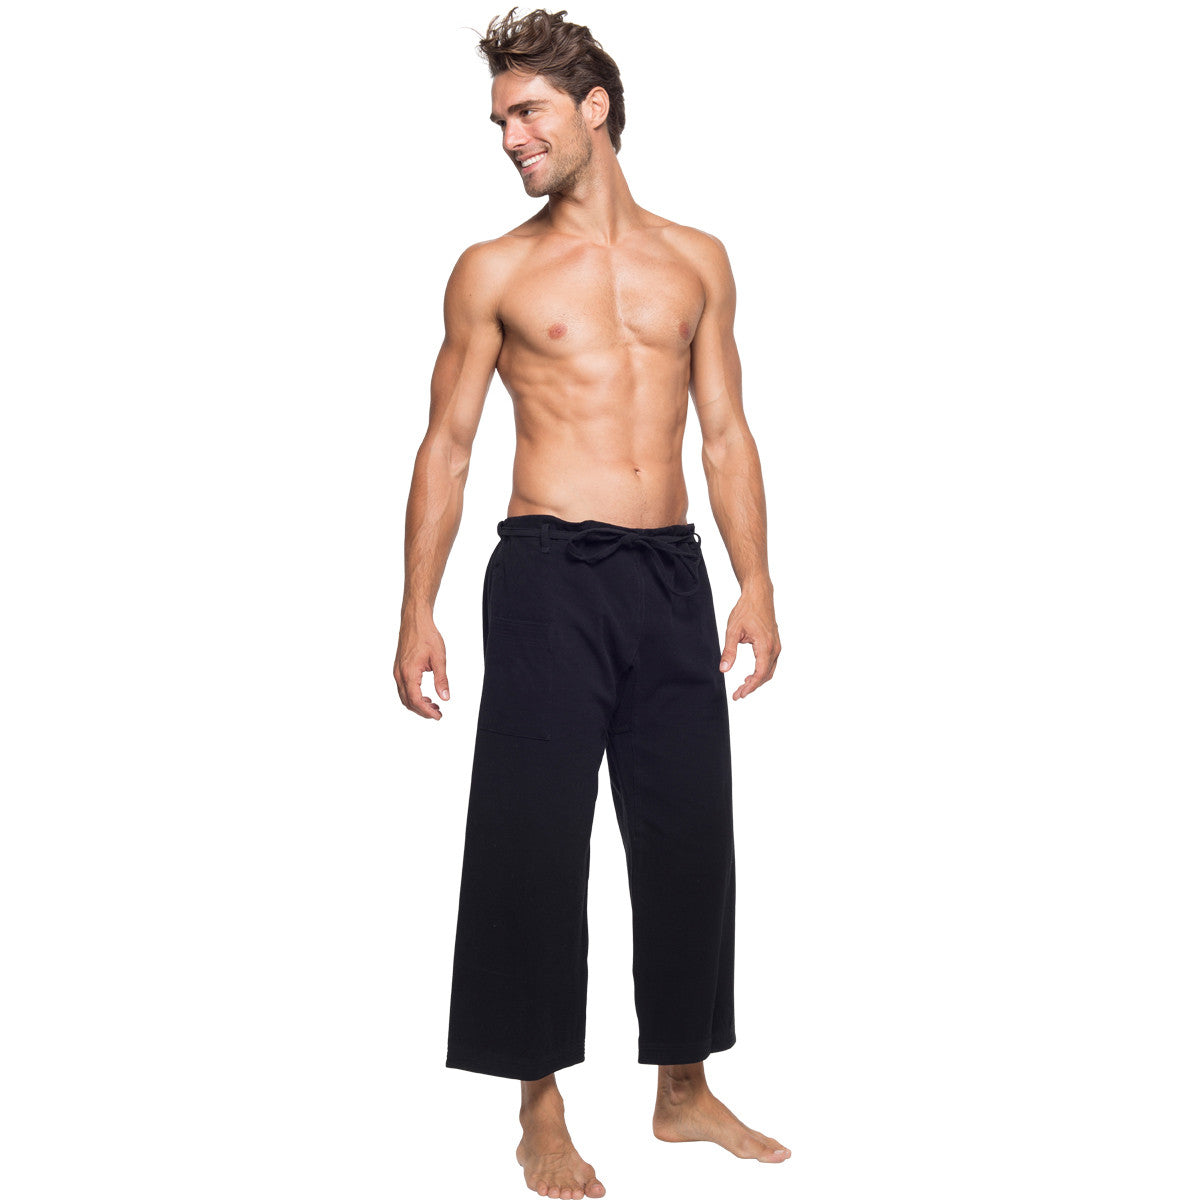 Whether you go to yoga multiple times a week, or you're more likely to meditate on your couch for a lazy Sunday, yoga pants are the seriously comfy athletic pants that every guy needs. Check out our favorite yoga pants for men to stay zen in style.